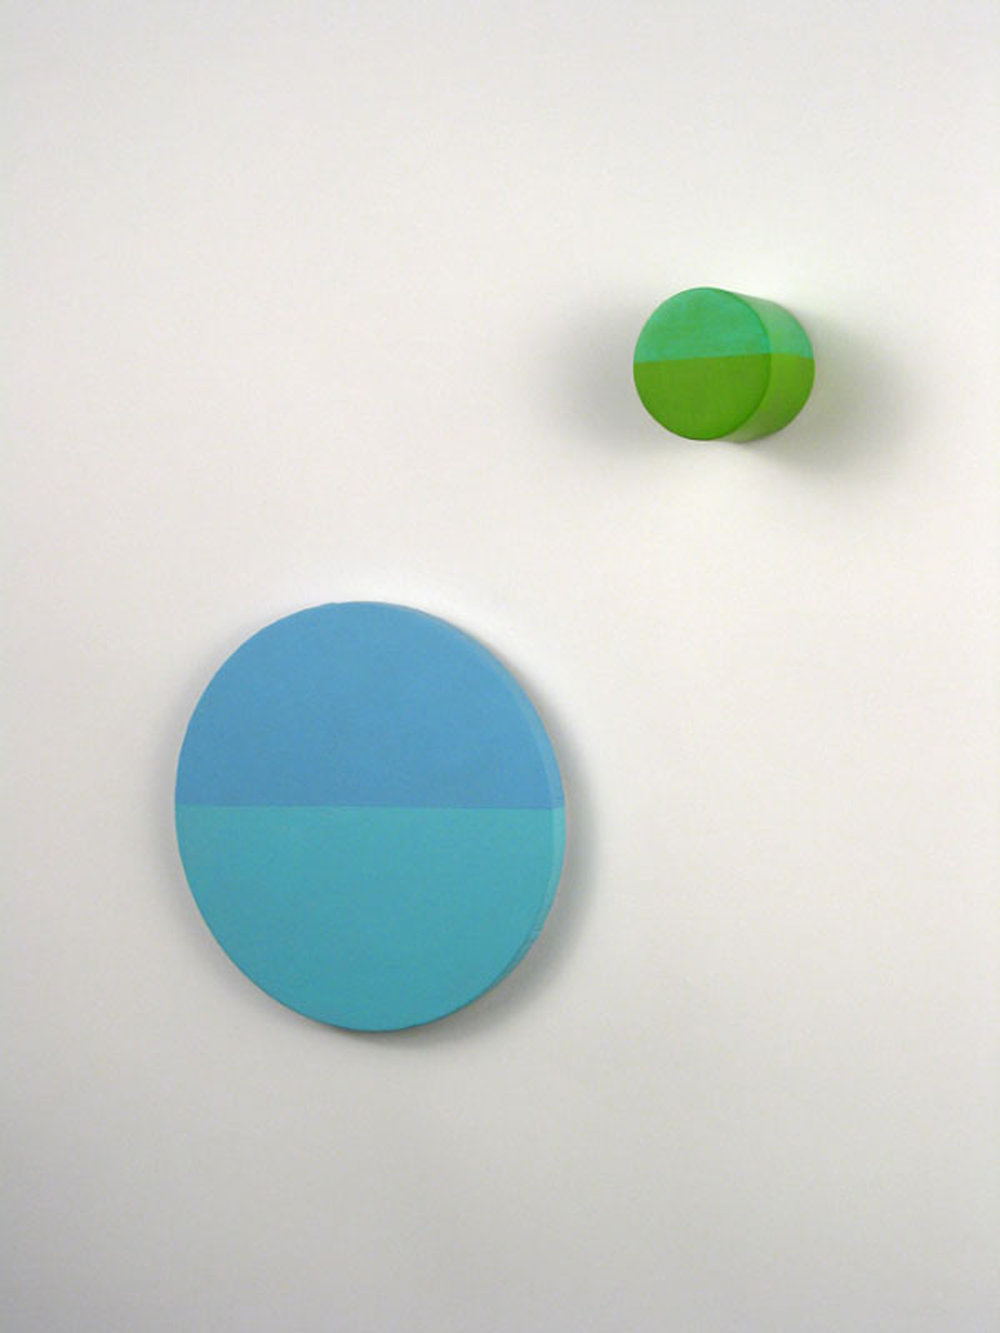 Parakeet for Palermo (Group 2),  Large disc: 8 x 0.5 inches / 20 x 1.5 cm, Small disc: 2.375 x 2 inches / 6 x 5 cm, acrylic on canvas and acrylic basswood filled with poplar, 2010